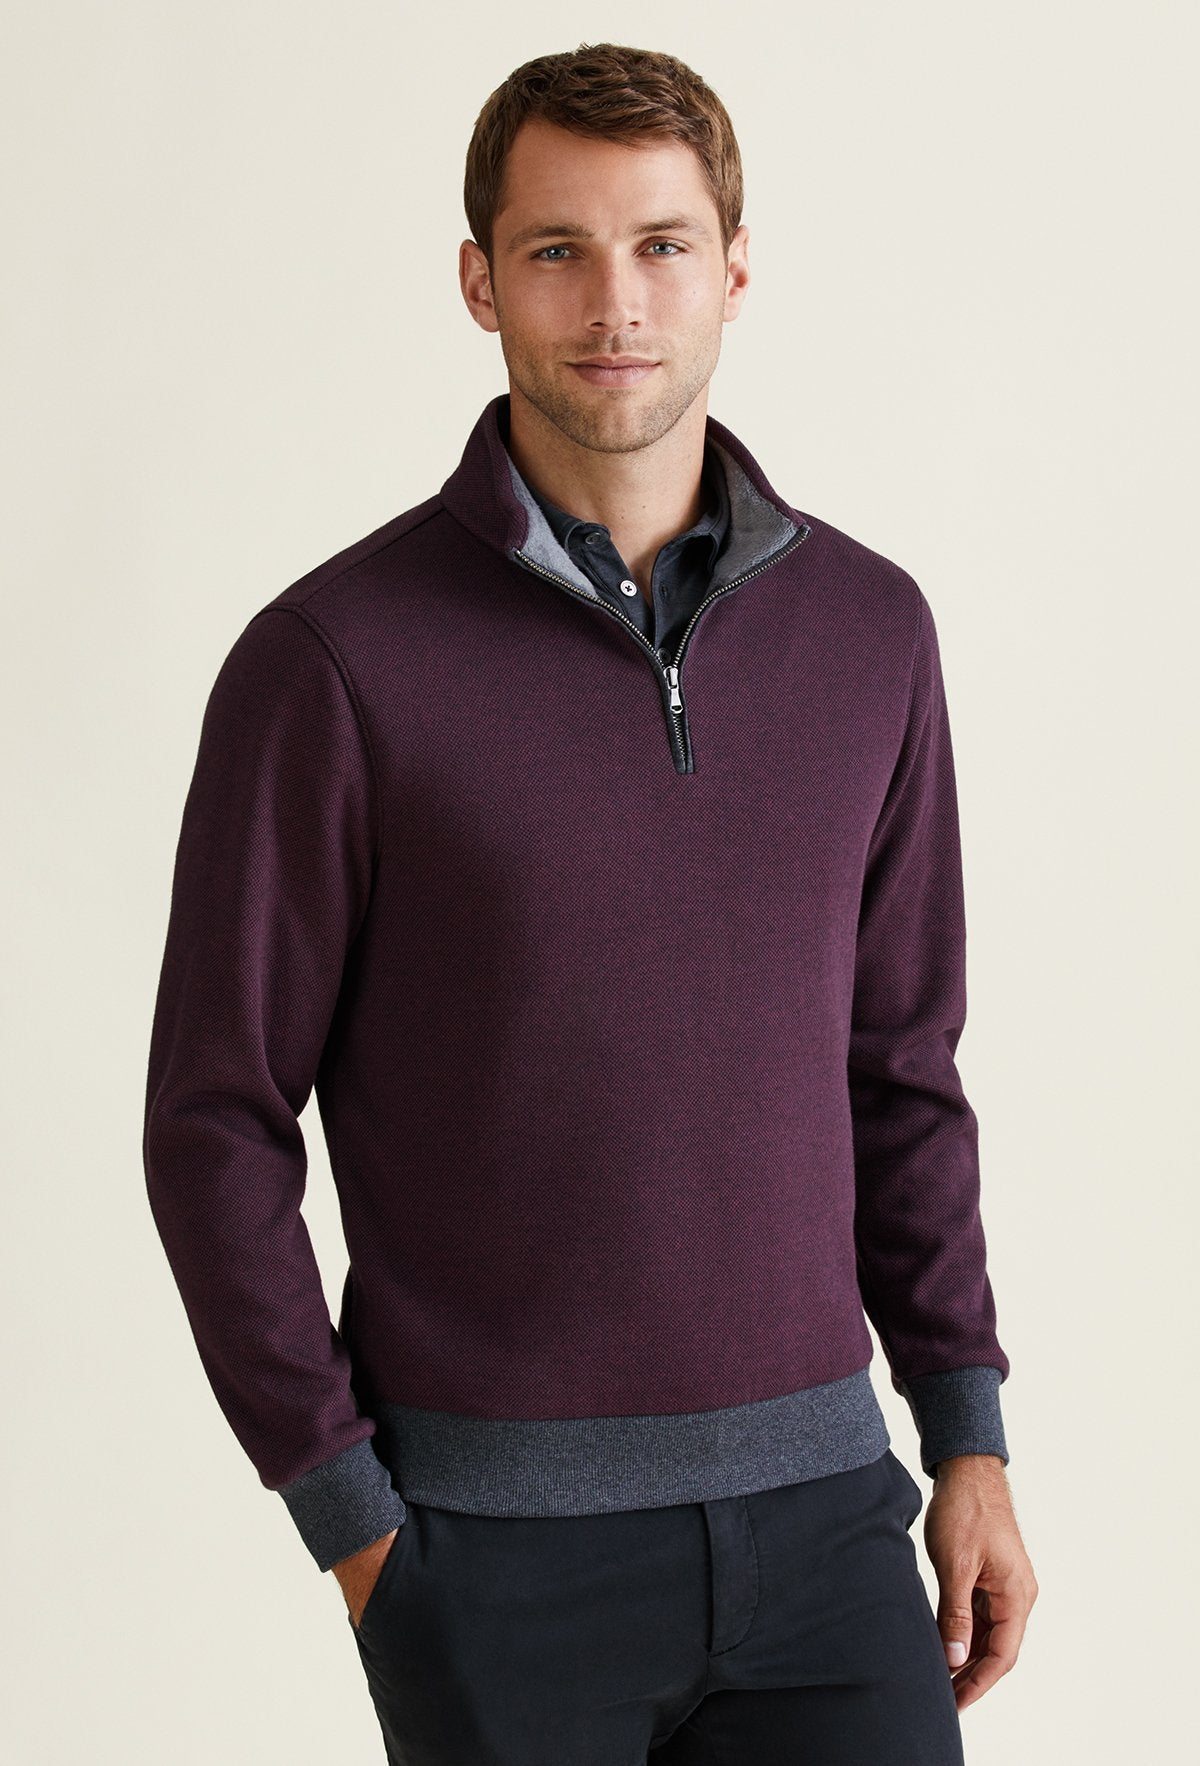 burgundy men's quarter zip sweater made from polyester, cotton and elastane